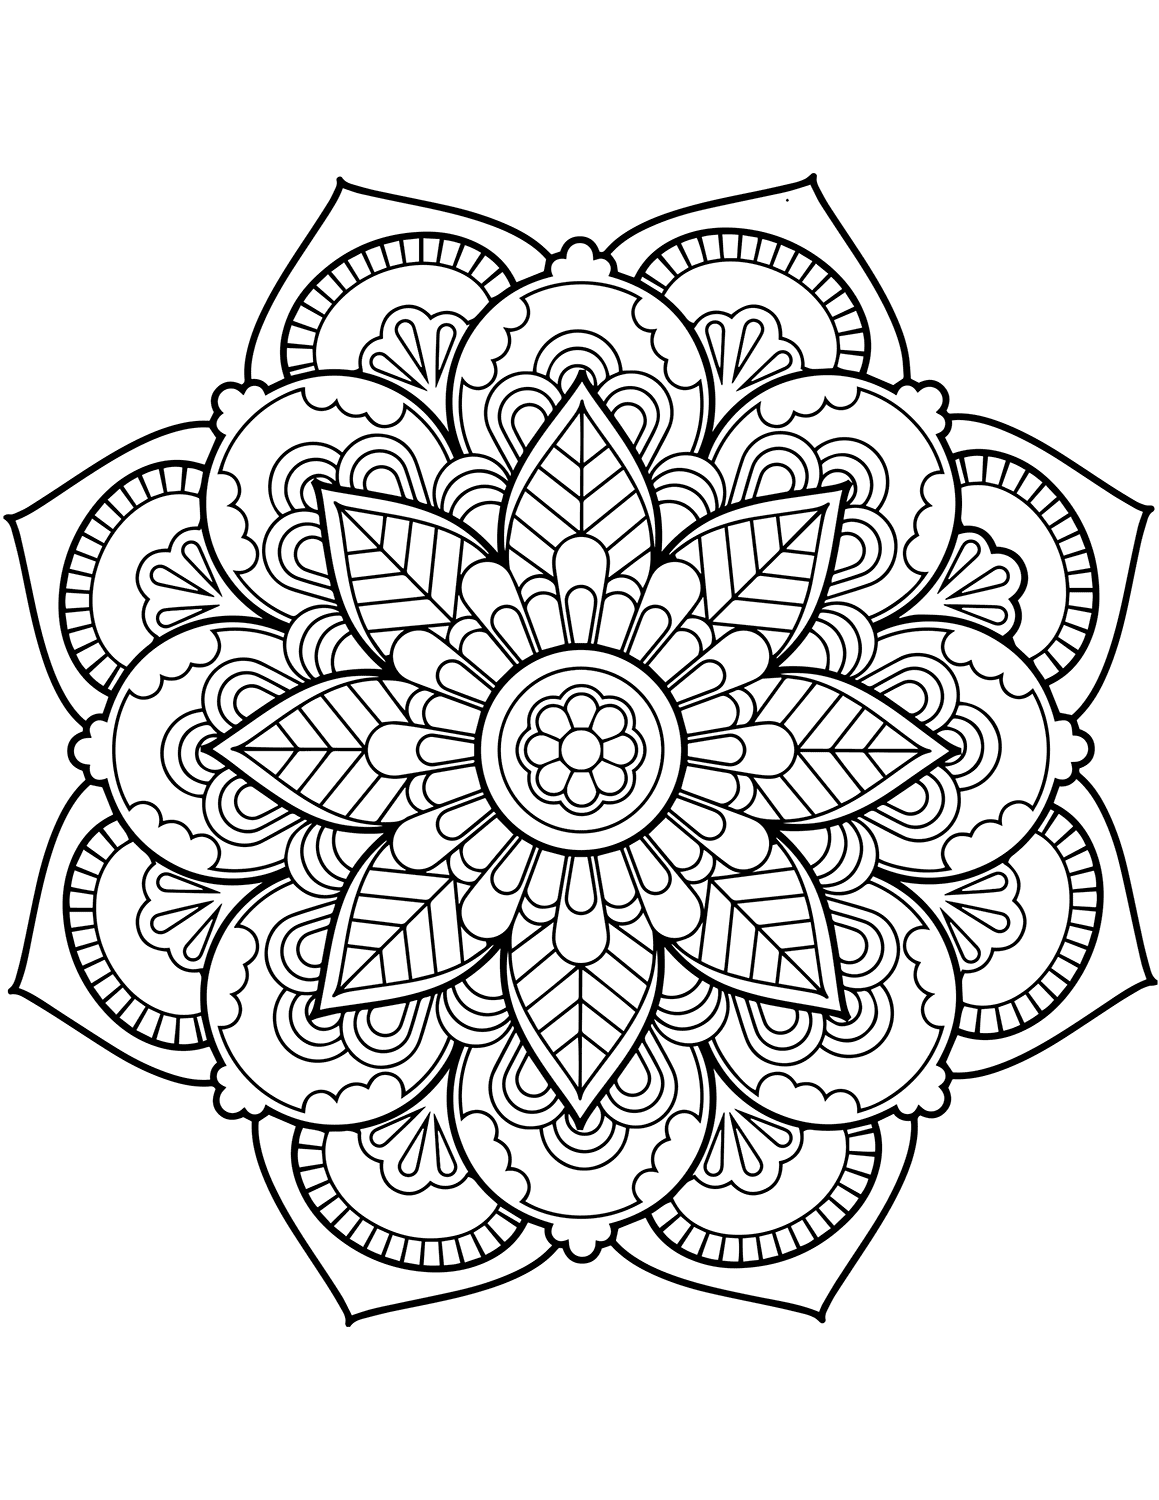 mandalas to color free don39t eat the paste july geometric mandala to print and color color free mandalas to